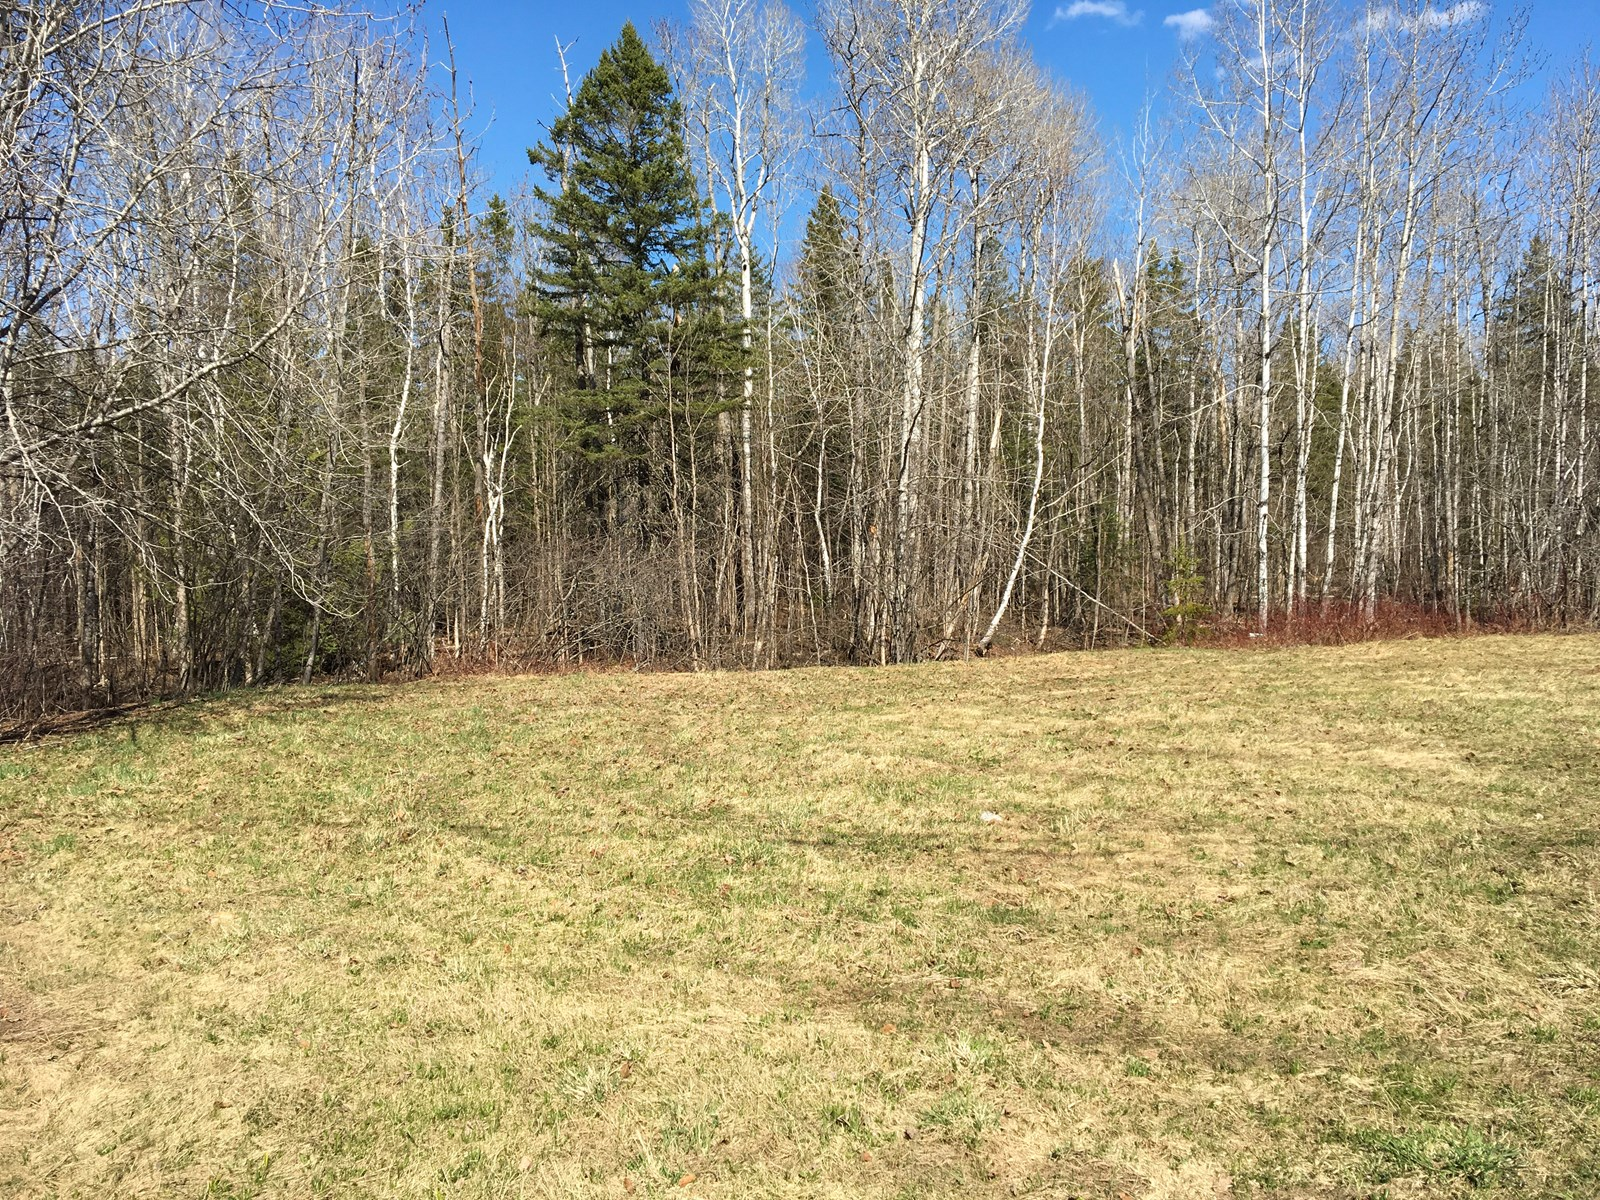 Land for Sale in Presque Isle, Maine